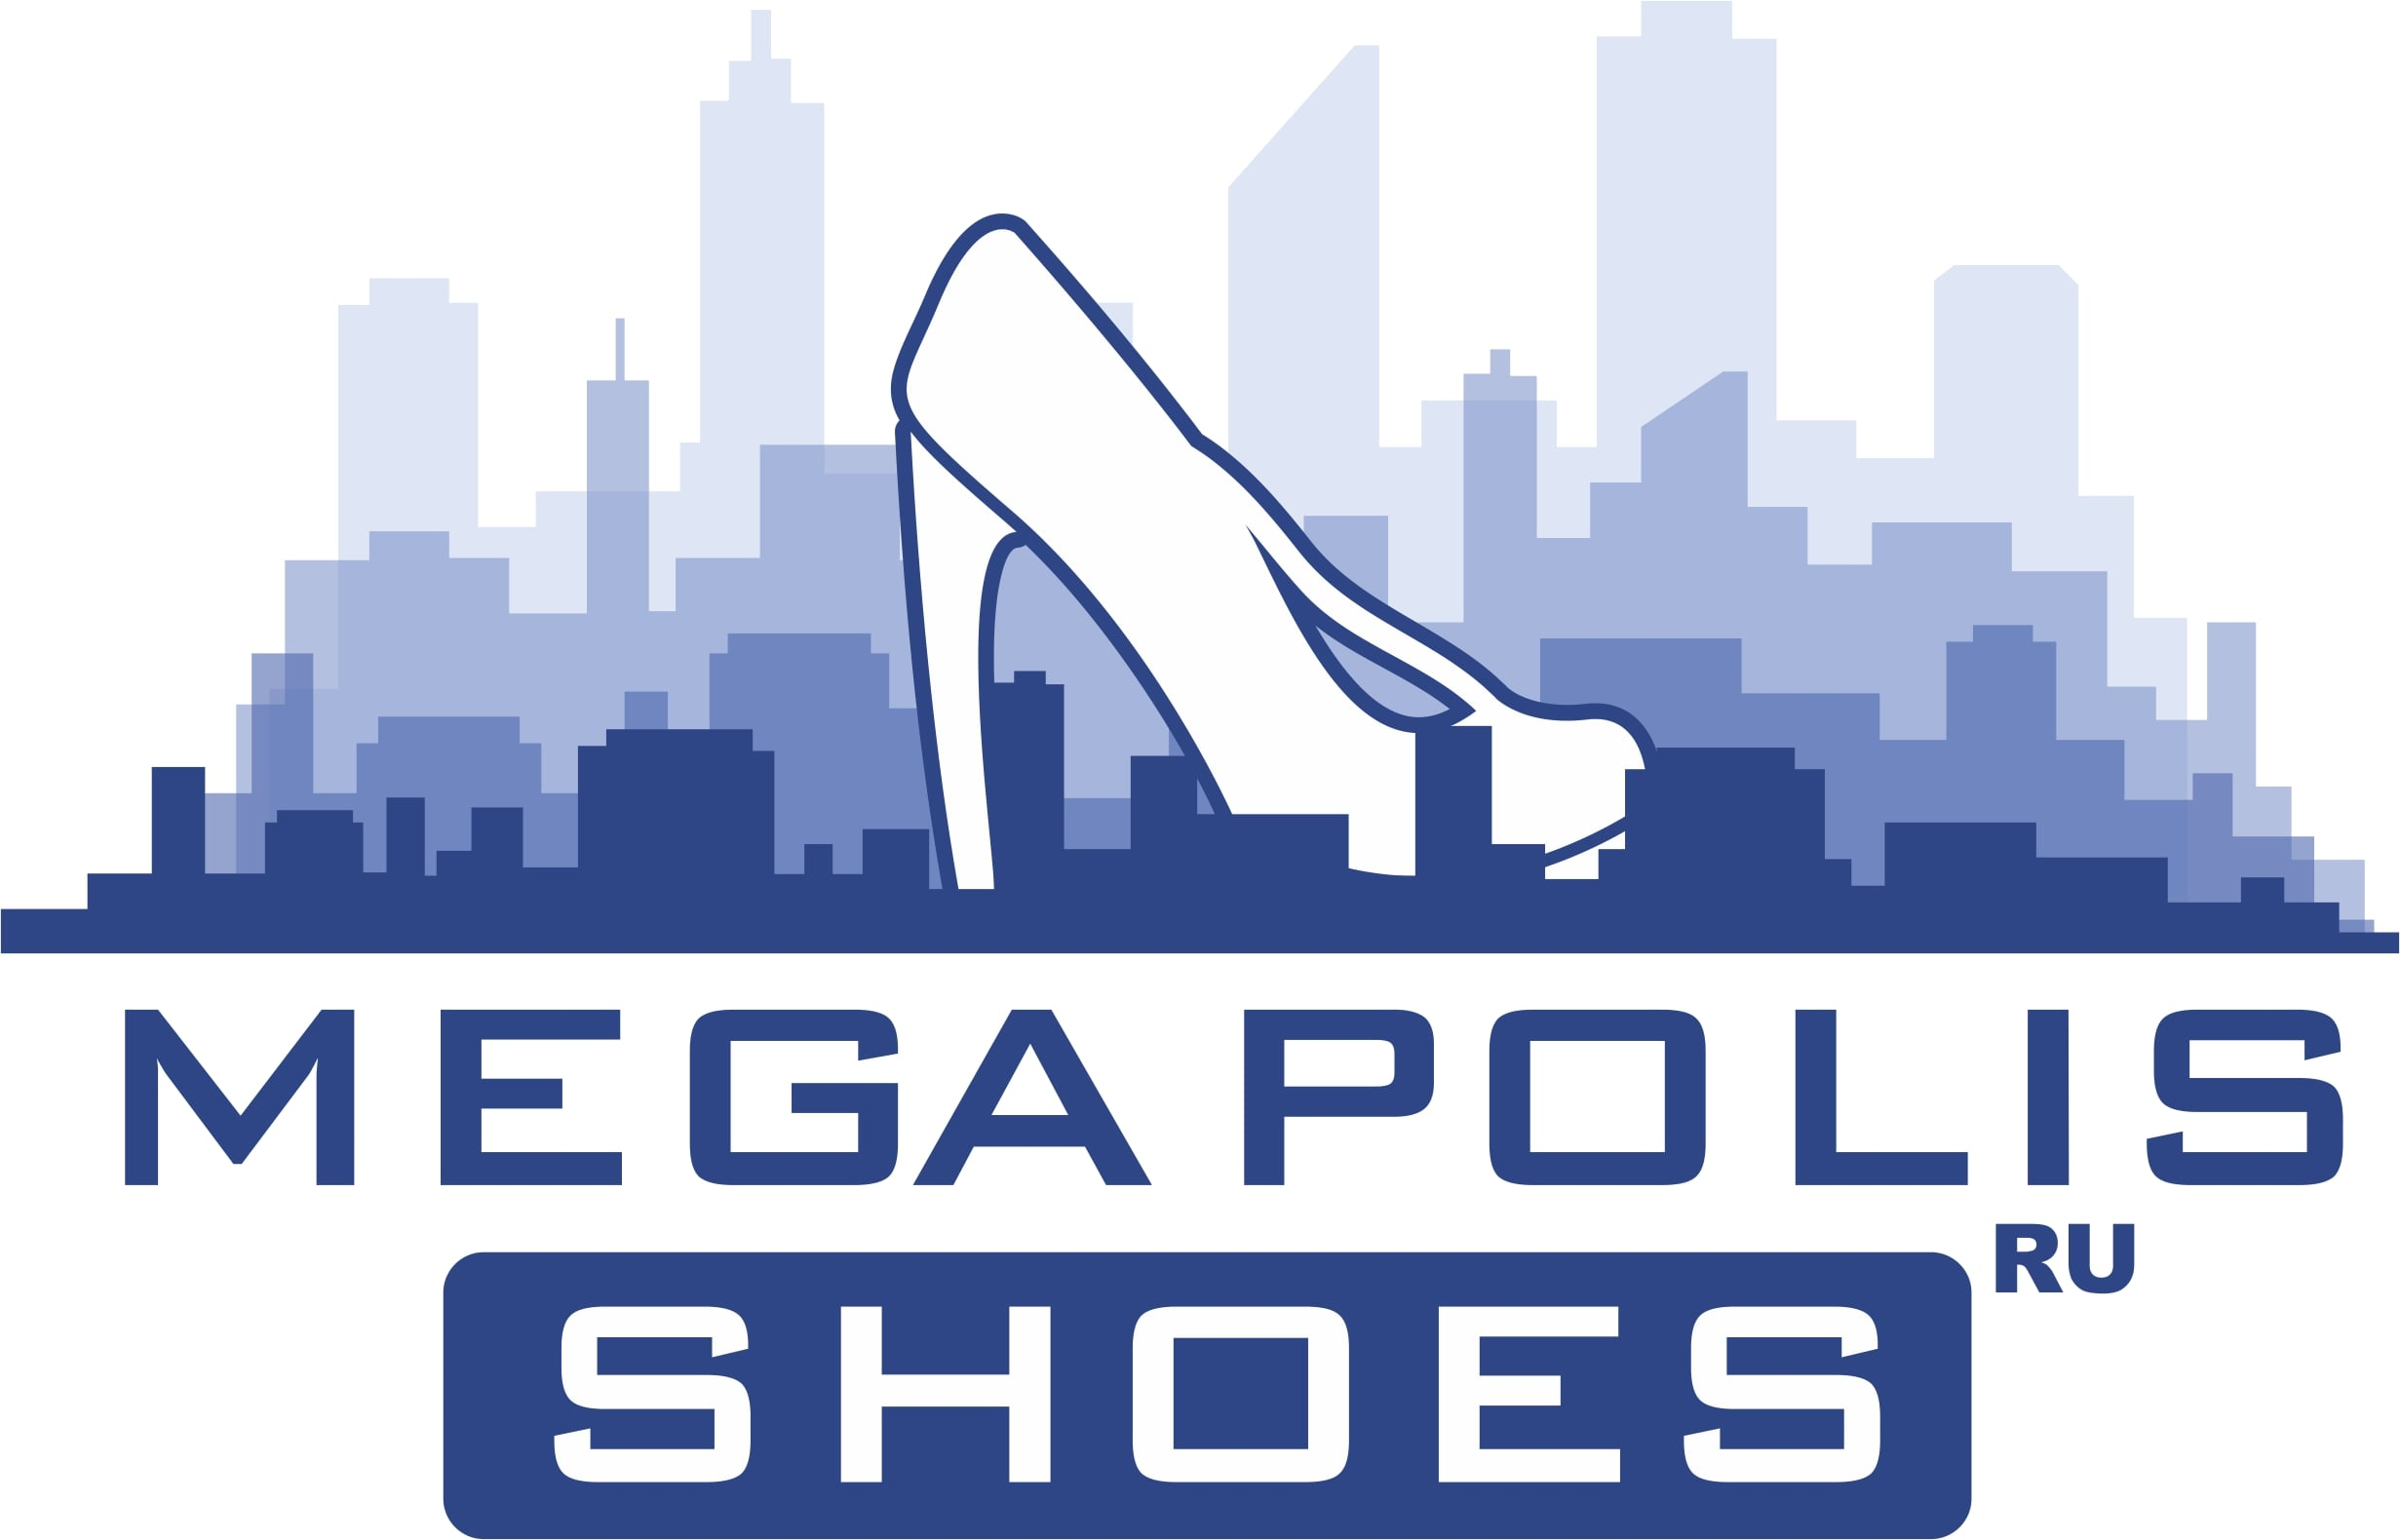 Megapolis shoes